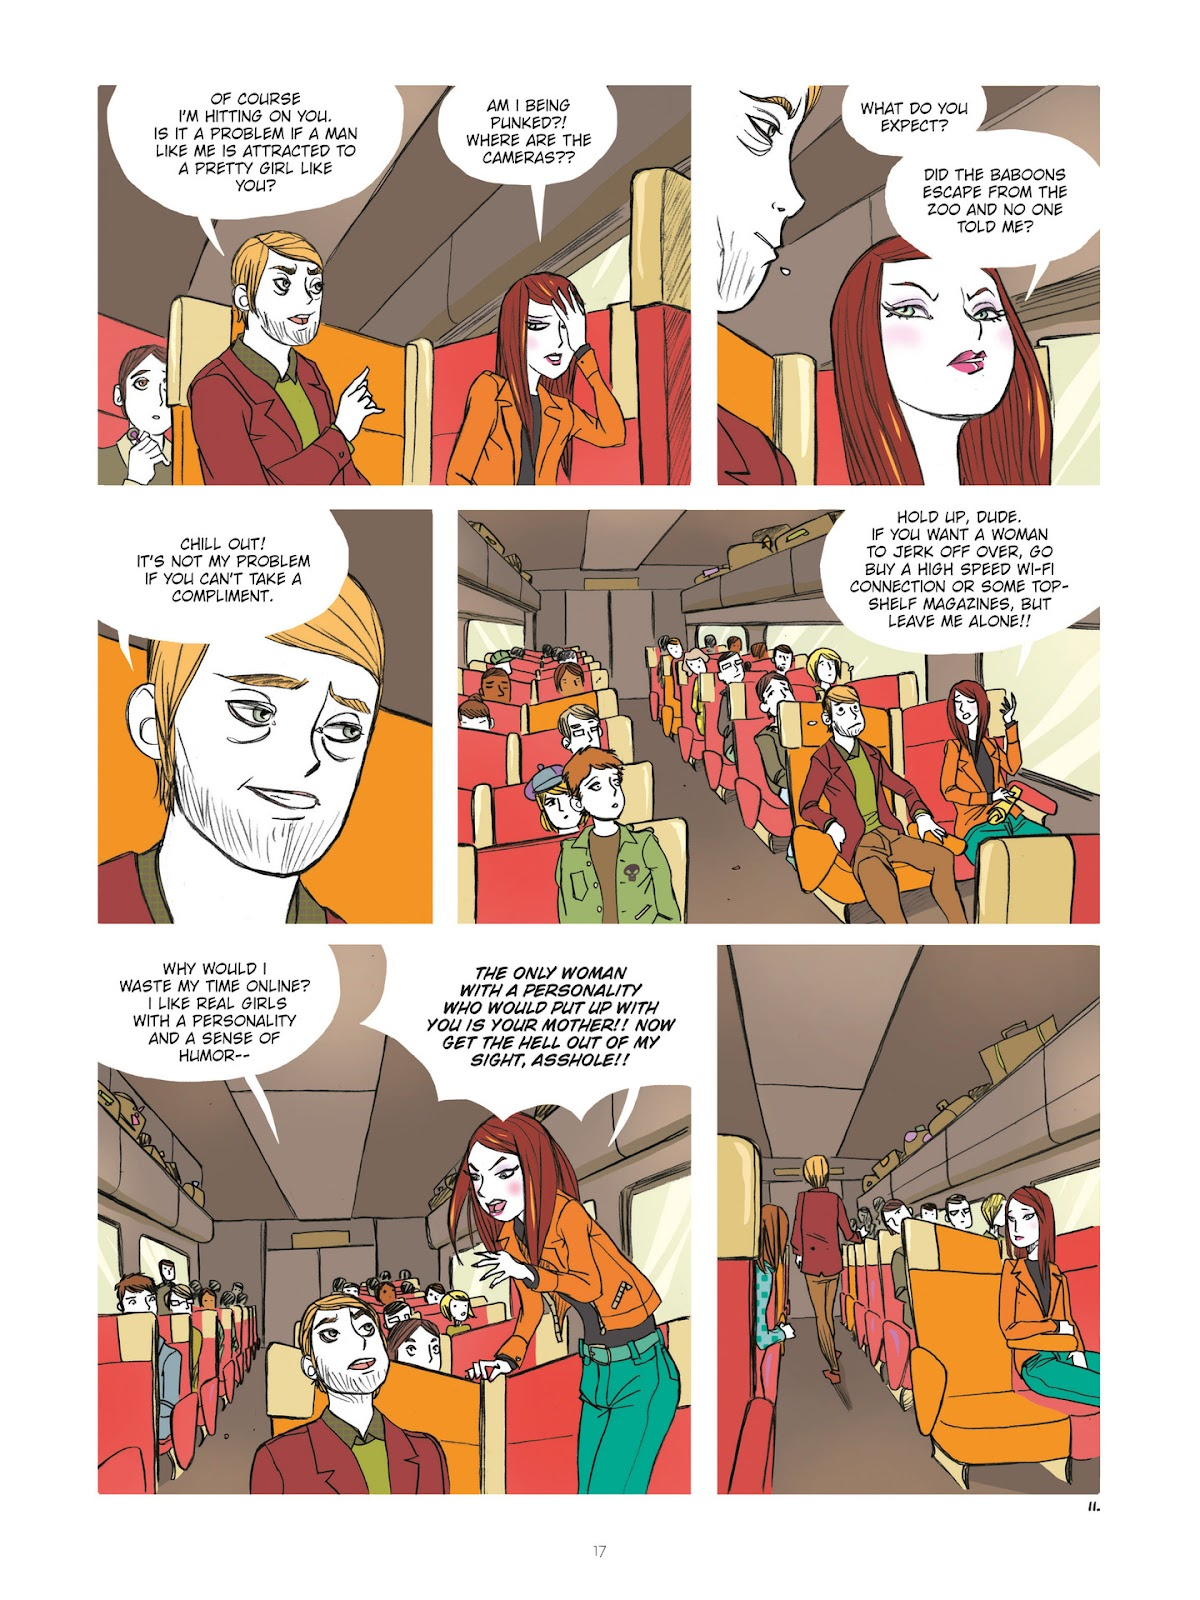 Read online Diary of A Femen comic -  Issue # TPB - 19